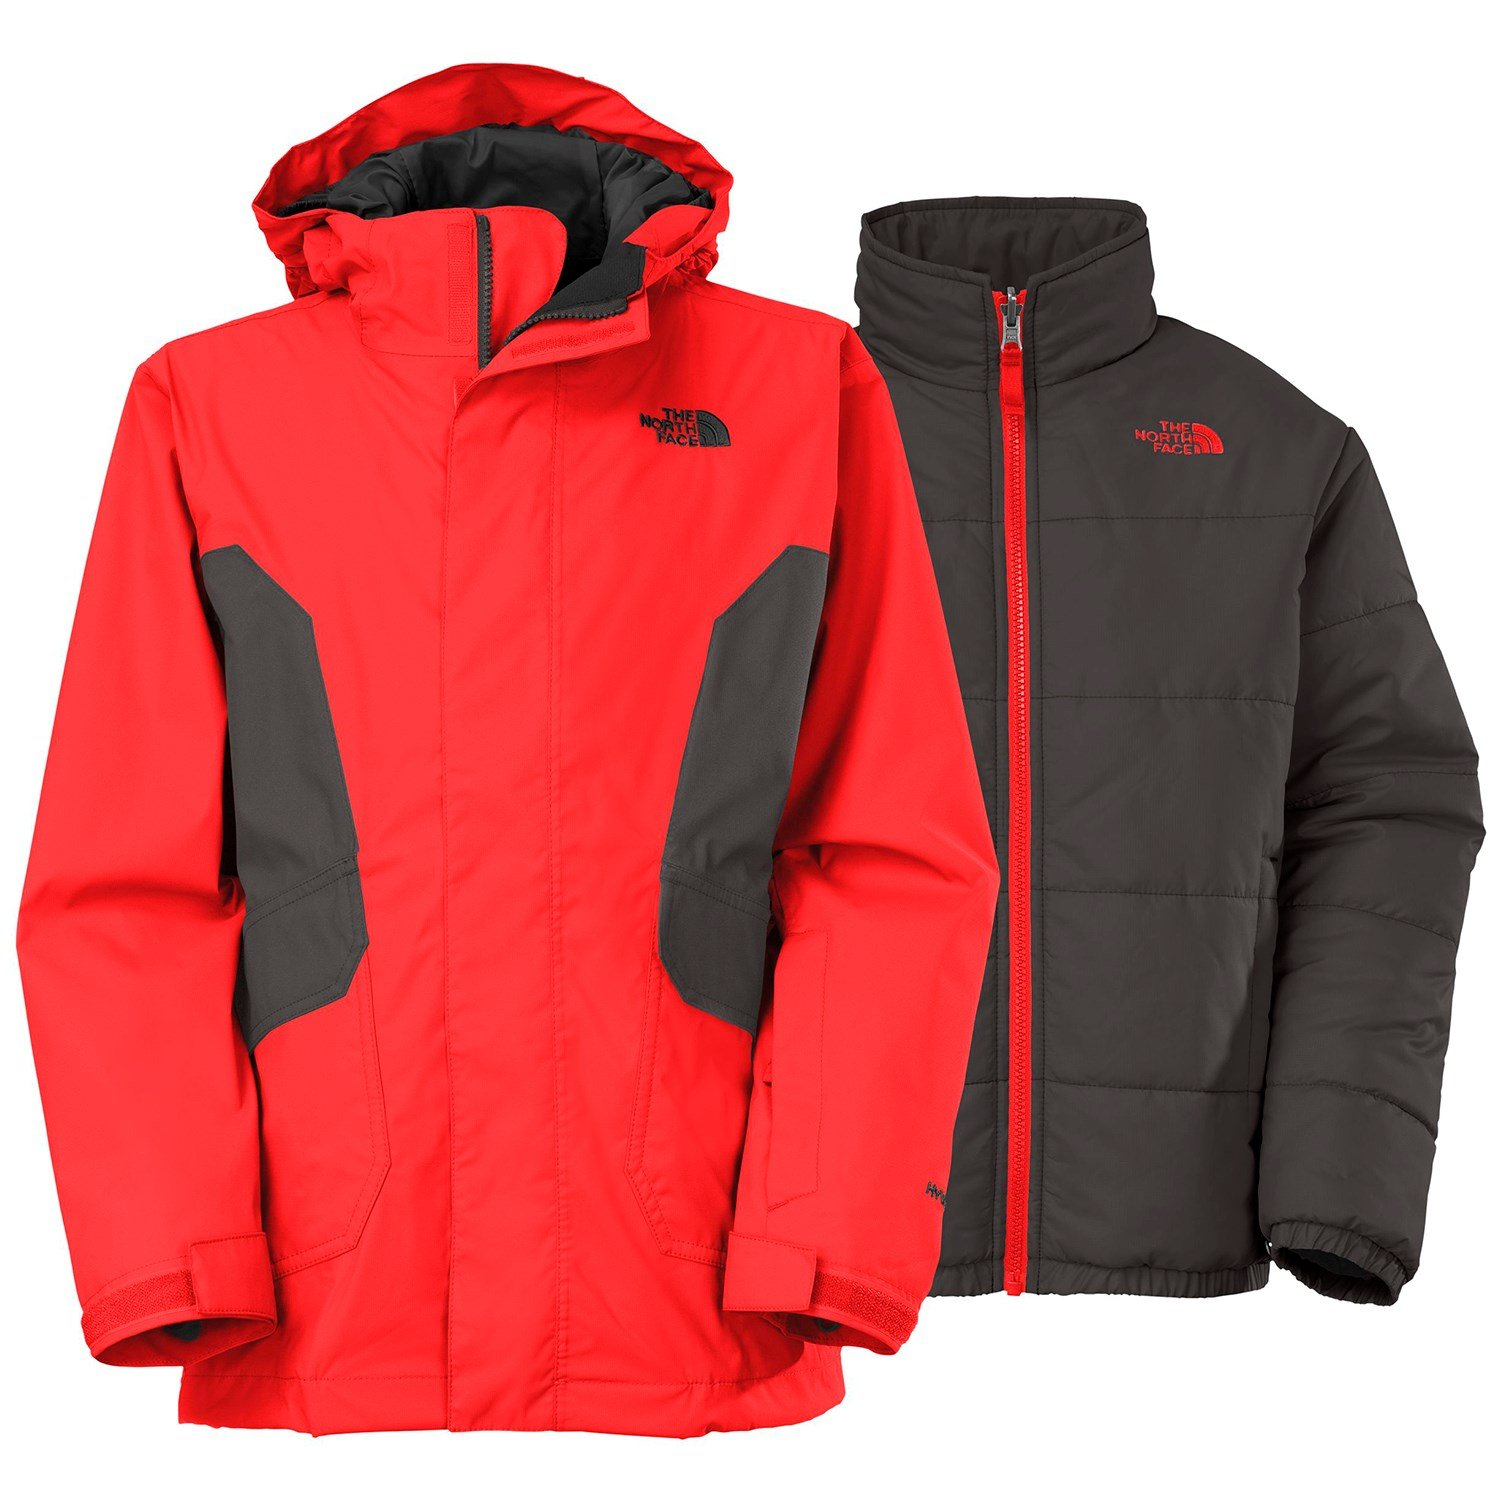 a01e7a723 The North Face Boundary Triclimate Jacket - Boys' | evo